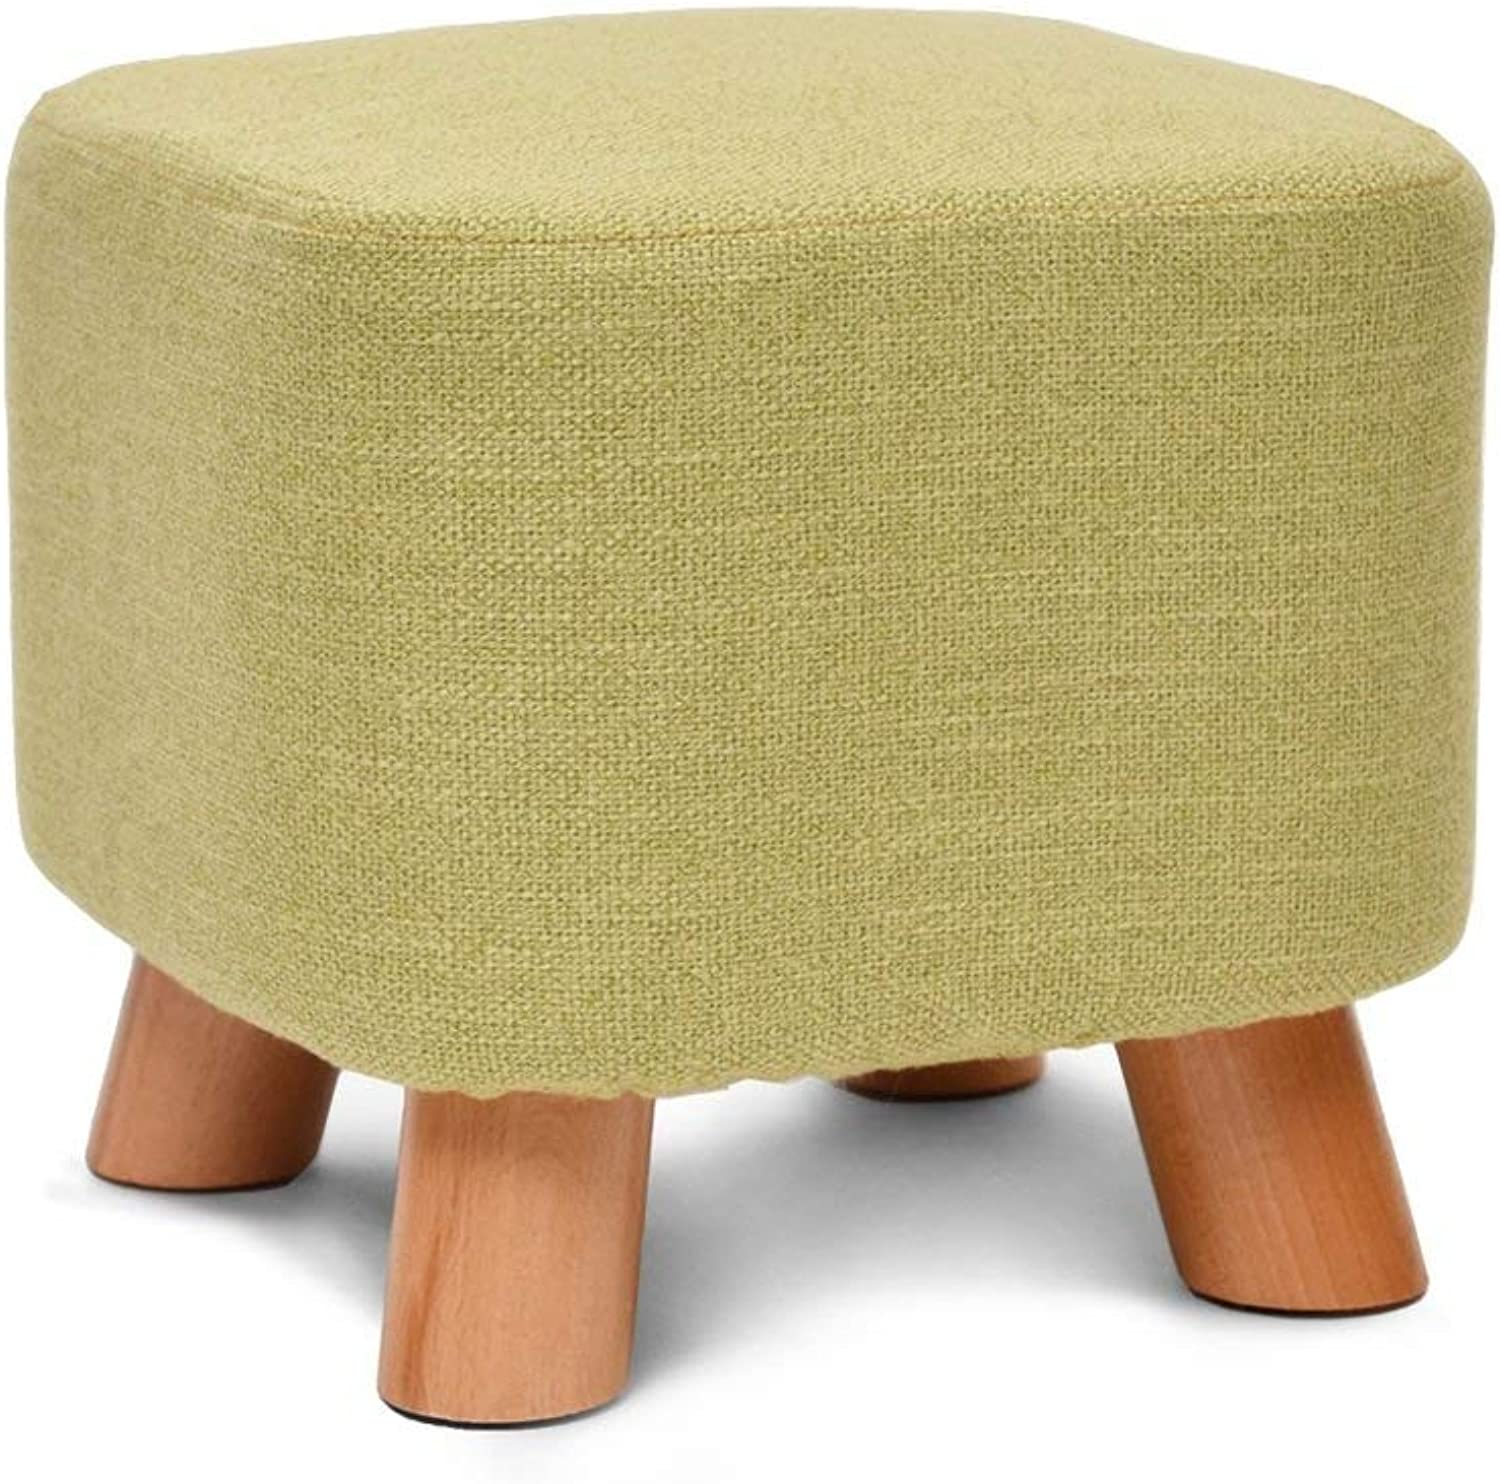 Xueshengshangmaoo Solid Wood shoes Stool Fashion Creative Stool Sofa Sofa Table Bench Home Stool -Comfortable Decoration Bar Stool Indoor Outdoor (color   A)